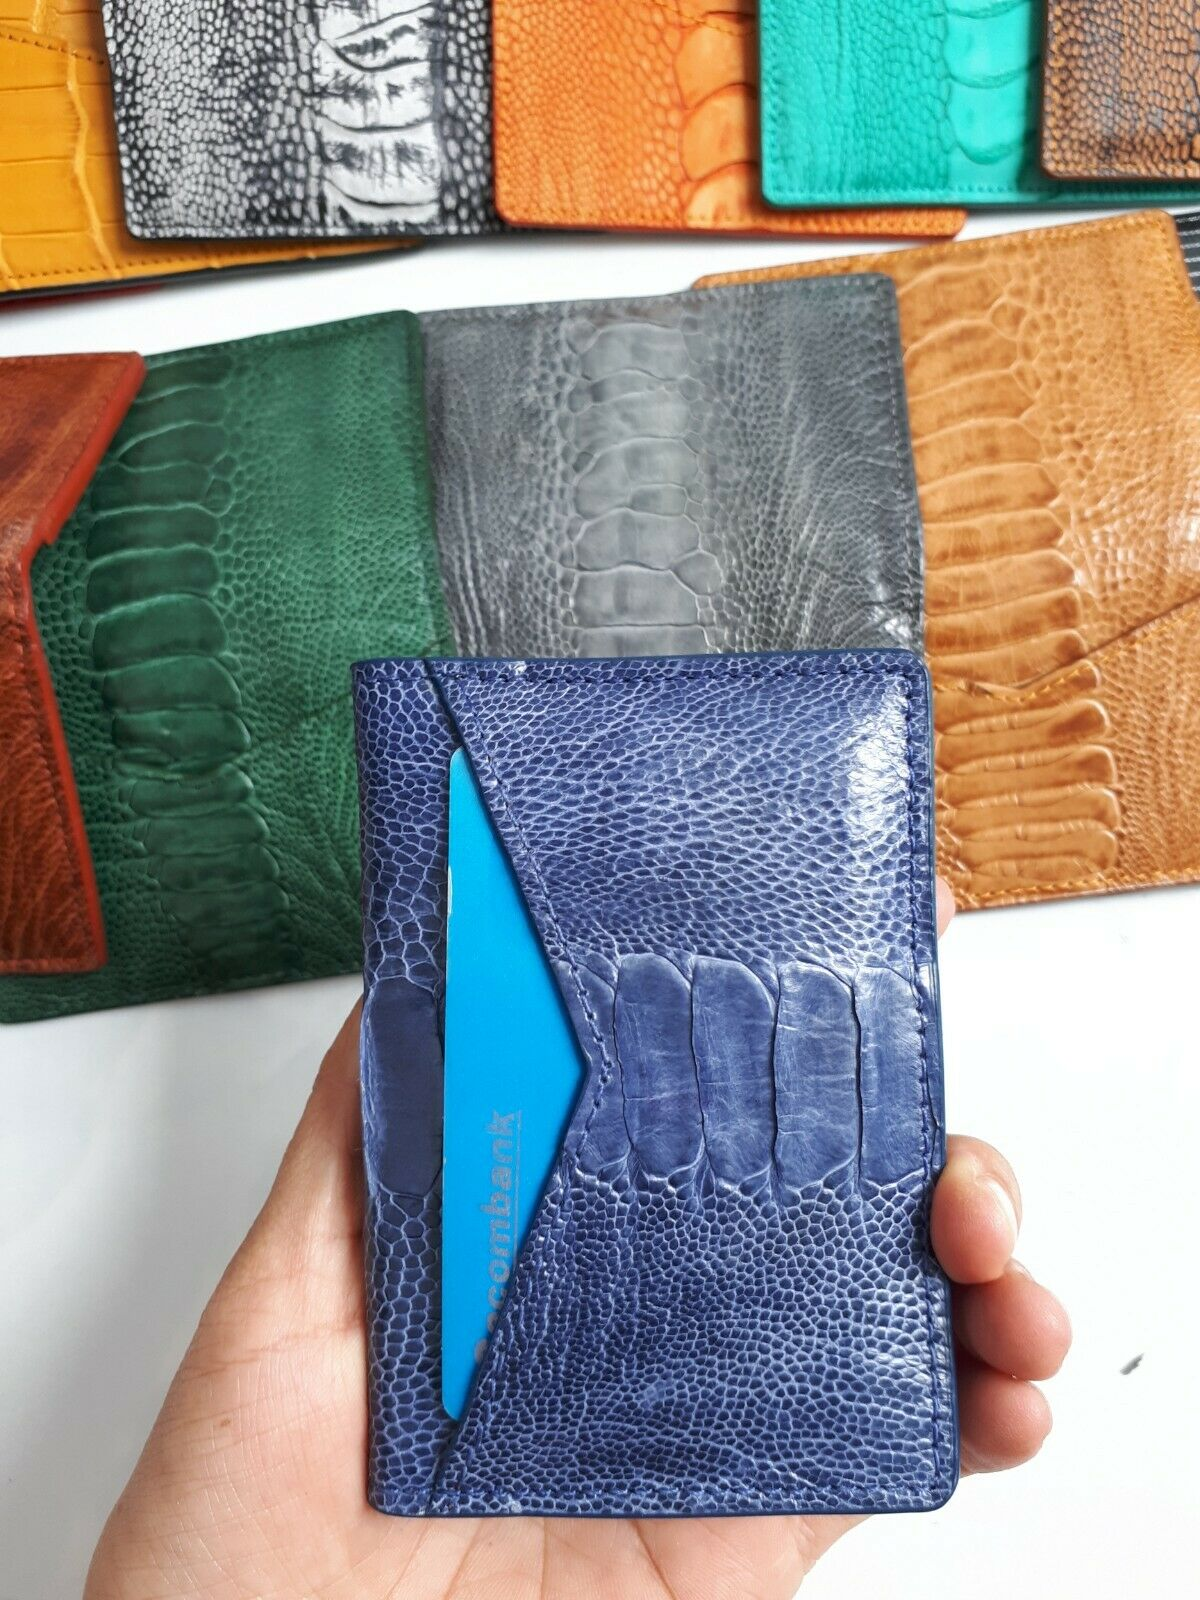 Navy BLUE BLACK OSRICH SKIN CREDIT CARD HOLDER DOUBLE SIDE Tan Green Gray Brown